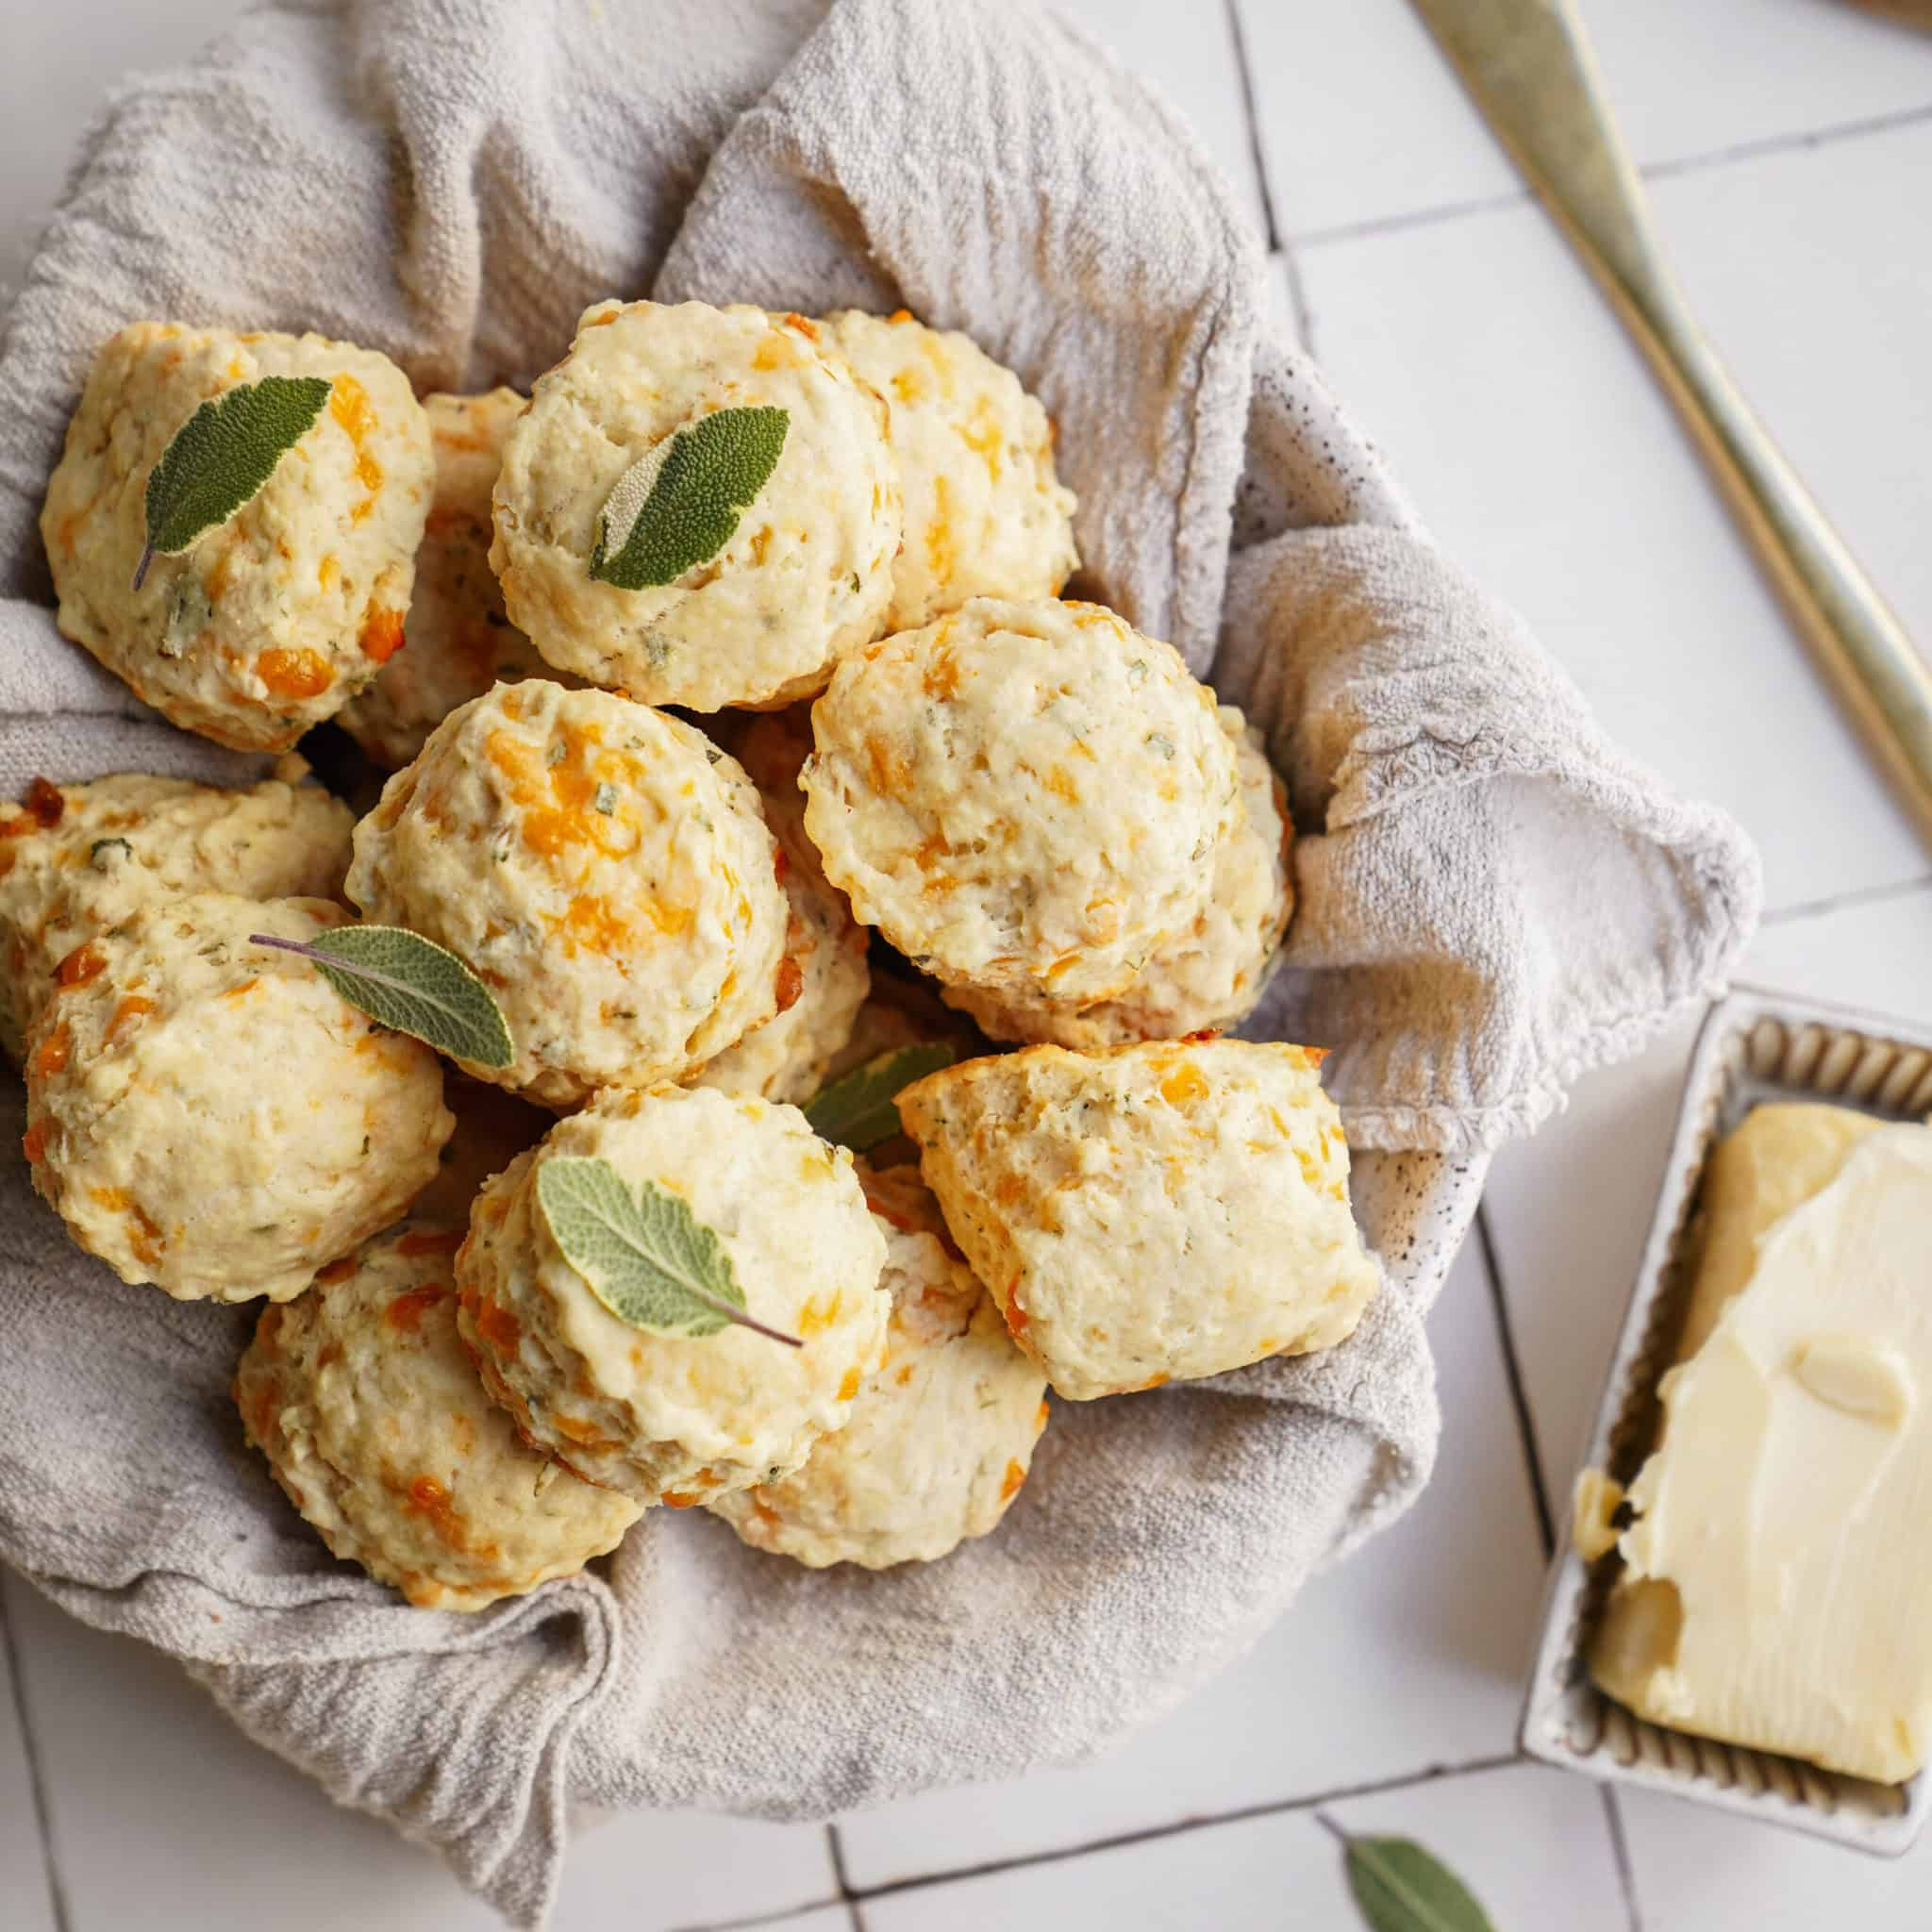 Cheddar biscuits in a basket with butter